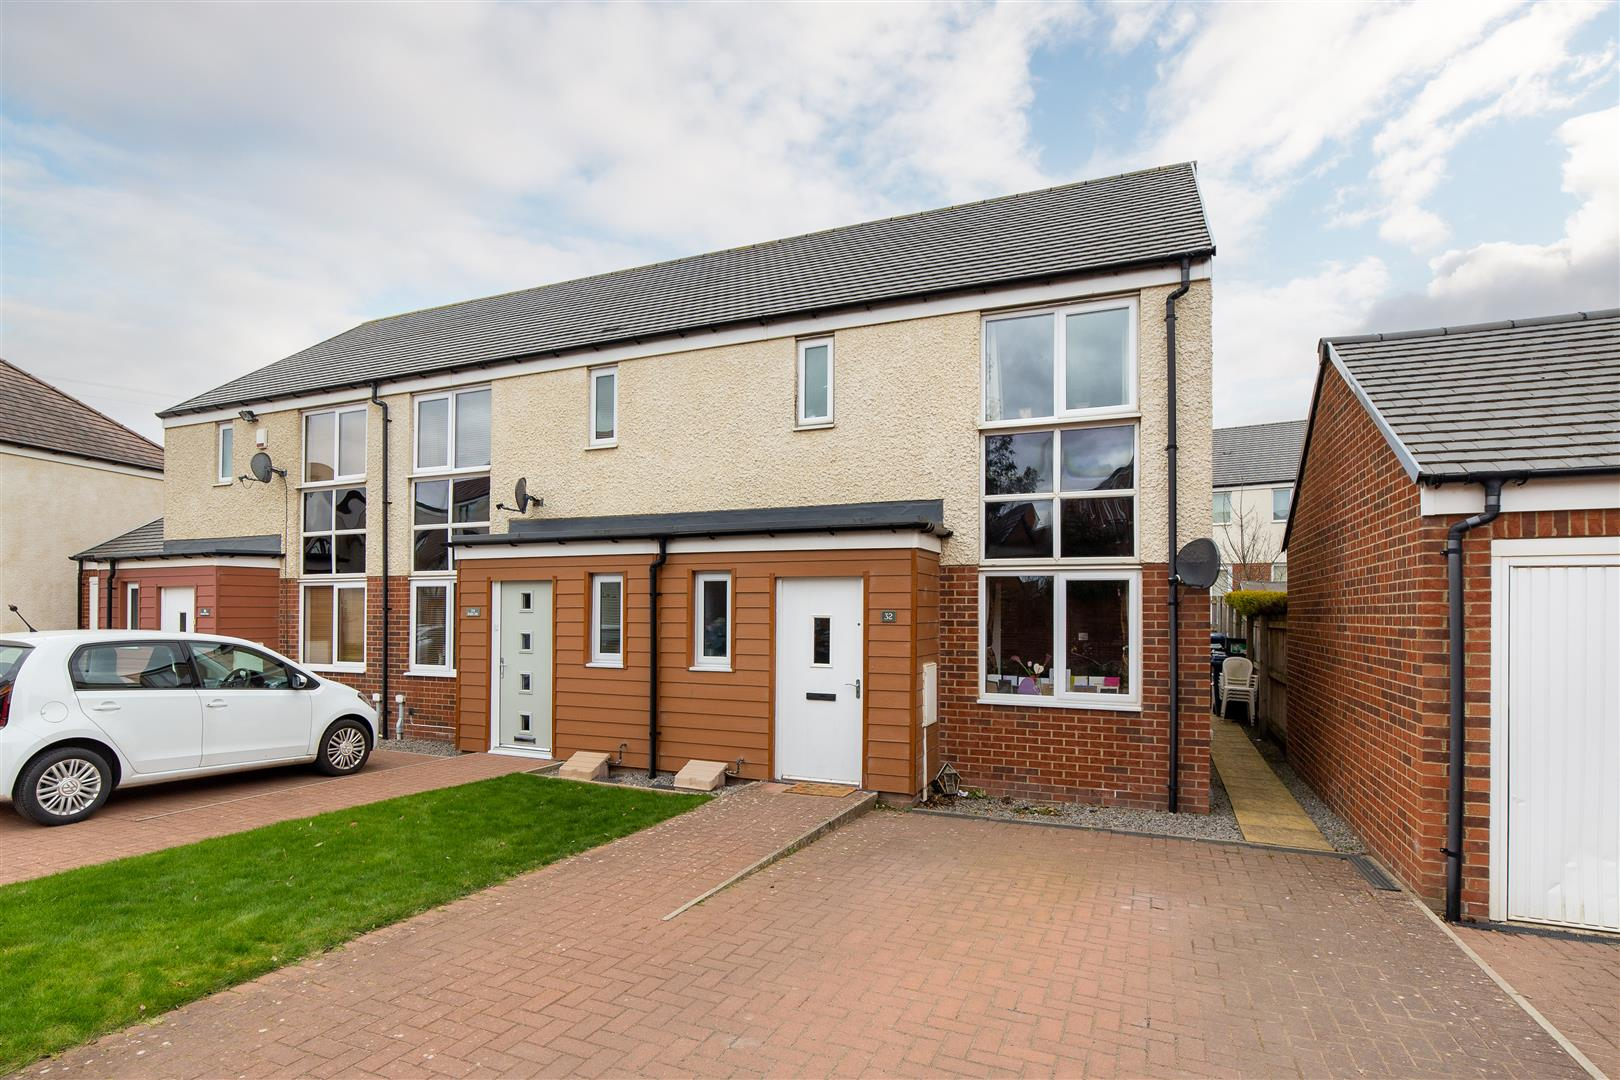 3 bed end of terrace house for sale in Bowden Close, Great Park, NE13